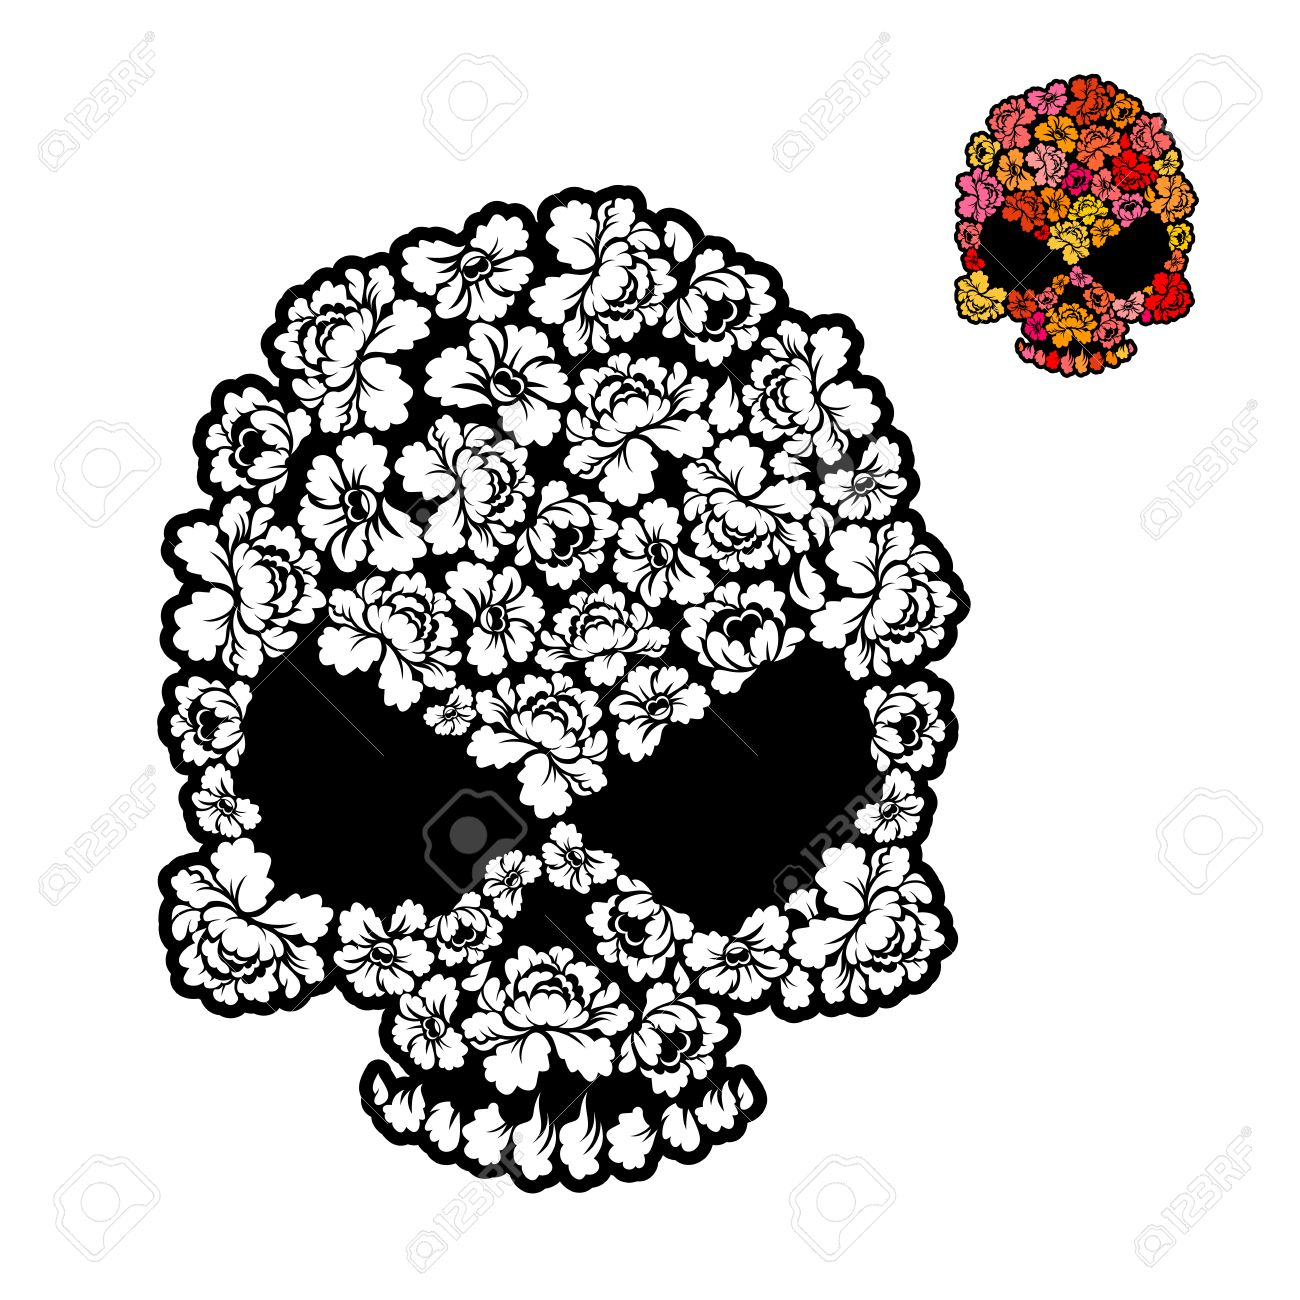 Flower Skull Coloring Book. Mexican Head Skeleton Of Rose Petals ...